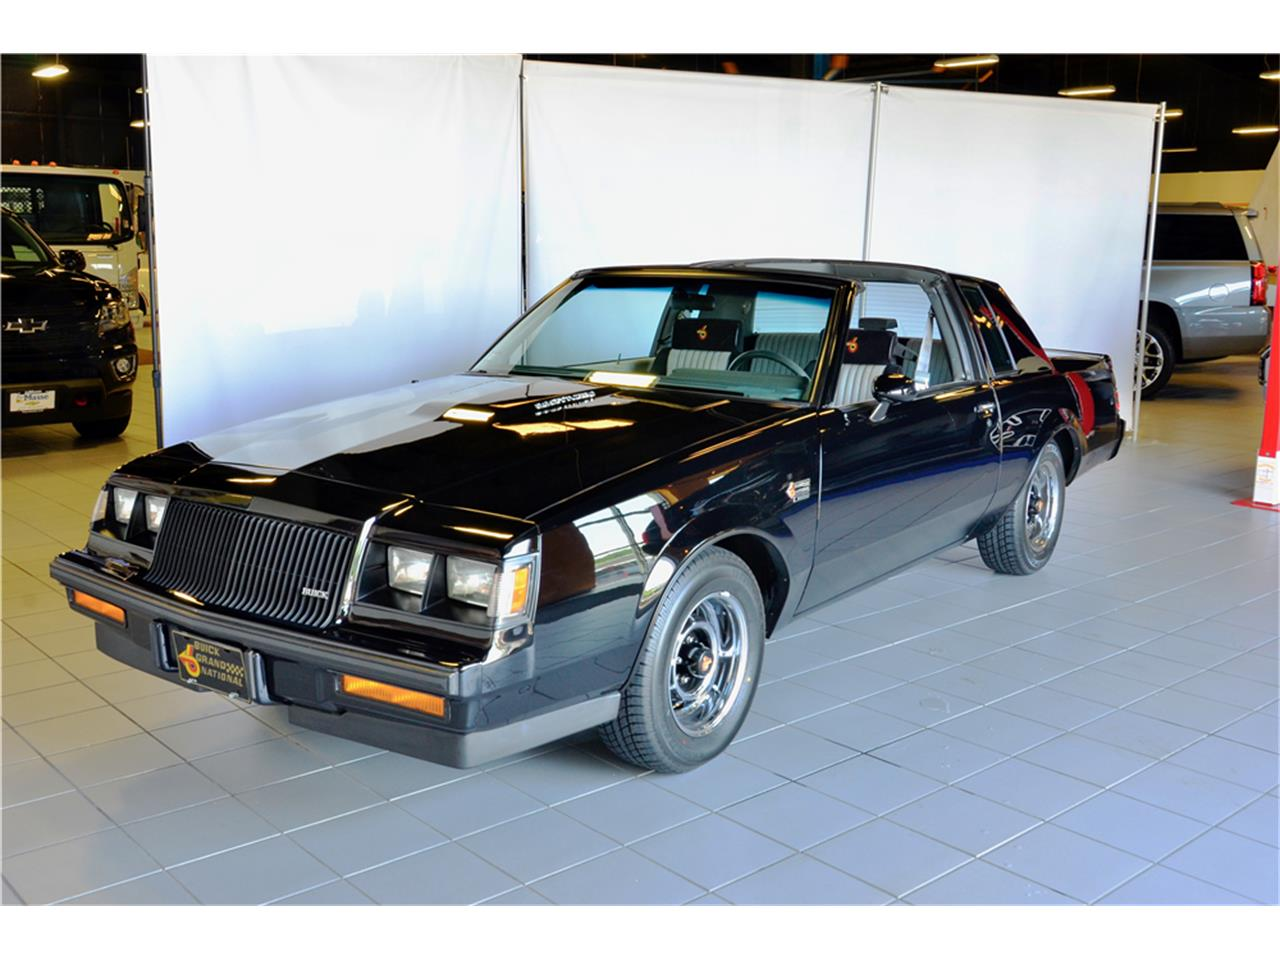 https://ccmarketplace.azureedge.net/cc-temp/listing/109/8105/12127986-1987-buick-grand-national-std.jpg